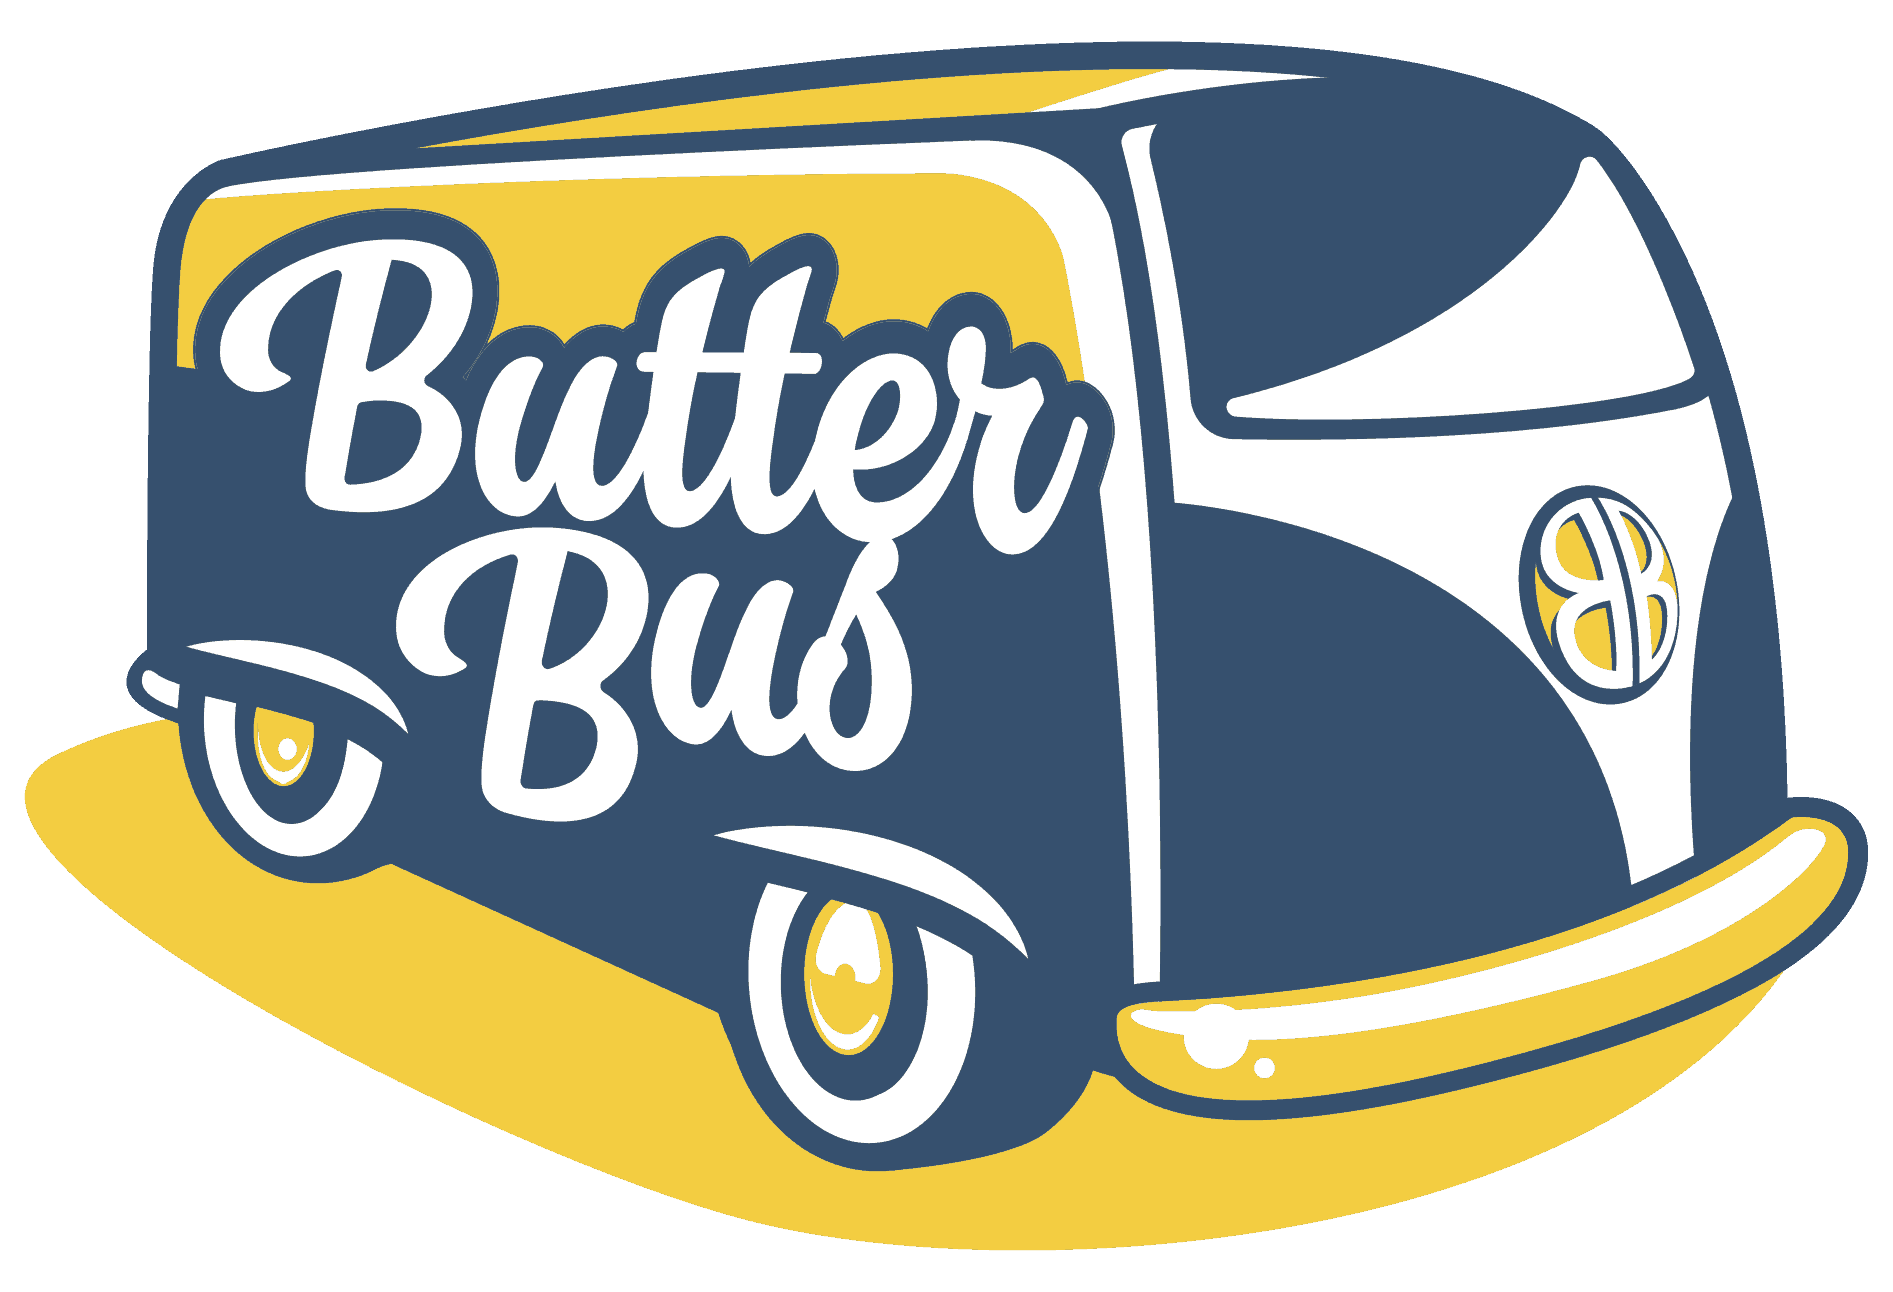 Butter Bus Yellow and Blue Logo